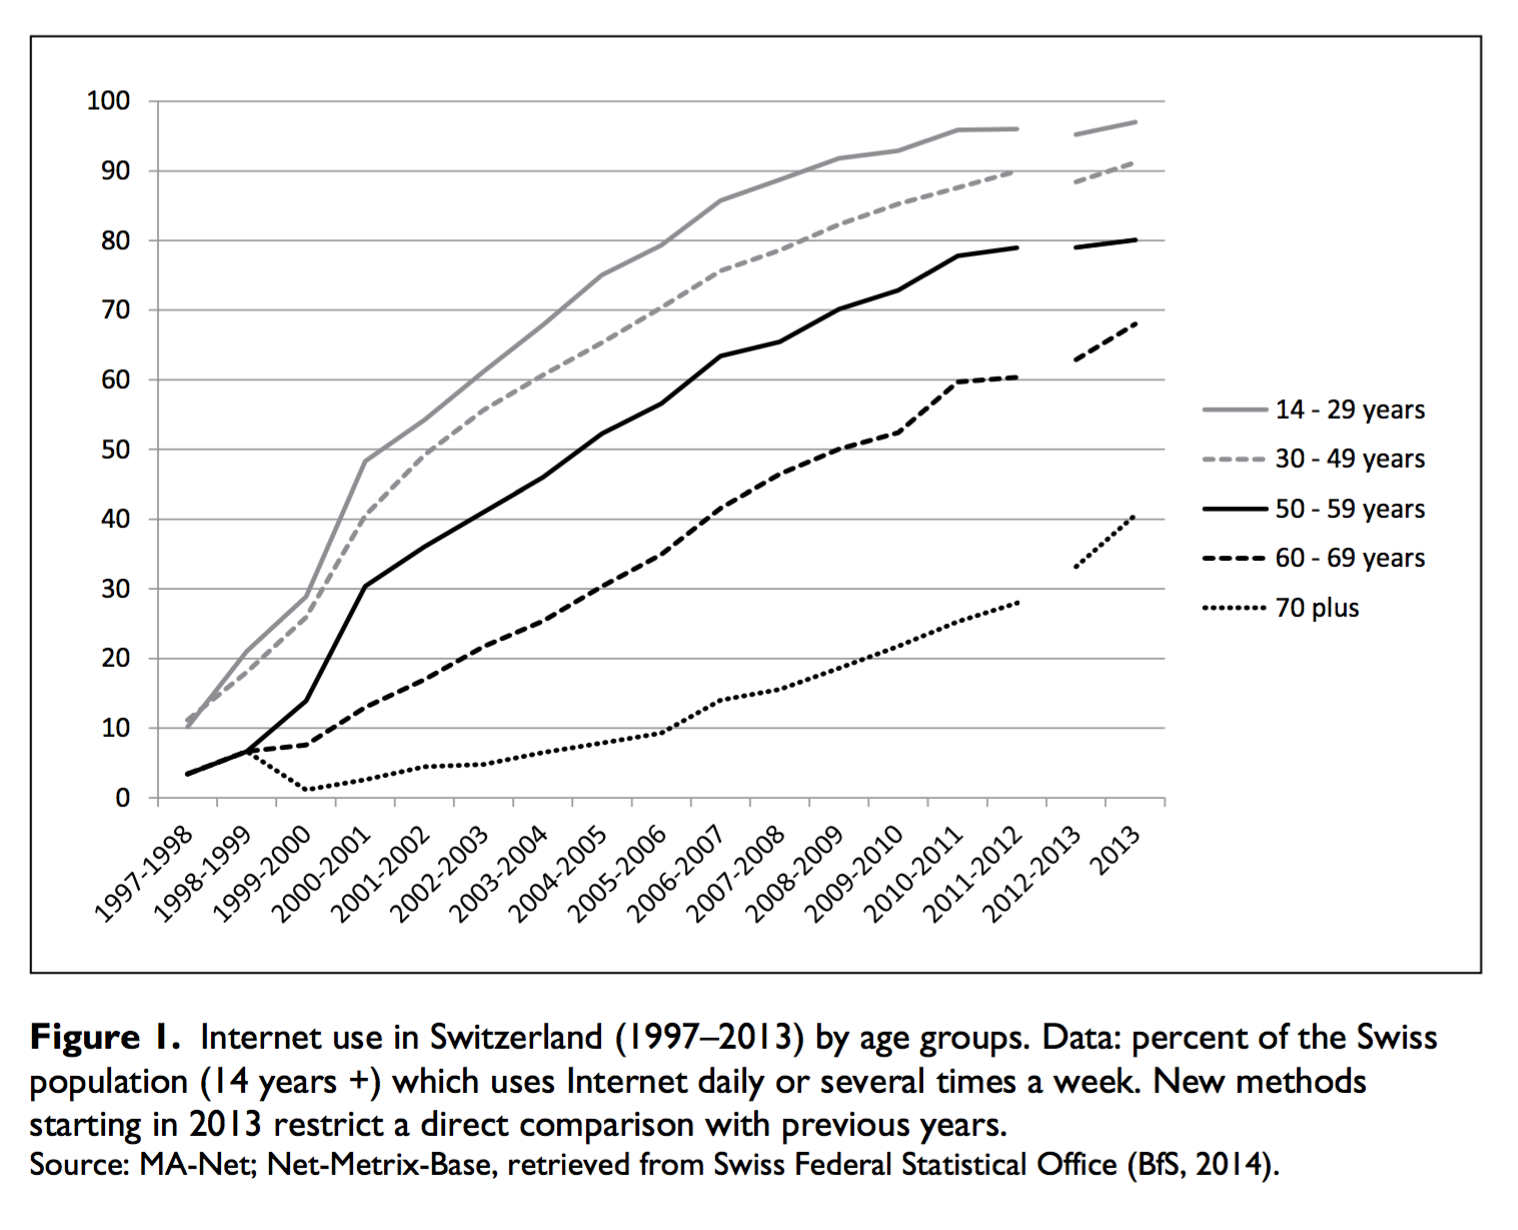 Internet use stats showing a huge drop-off for over 70s[^1]